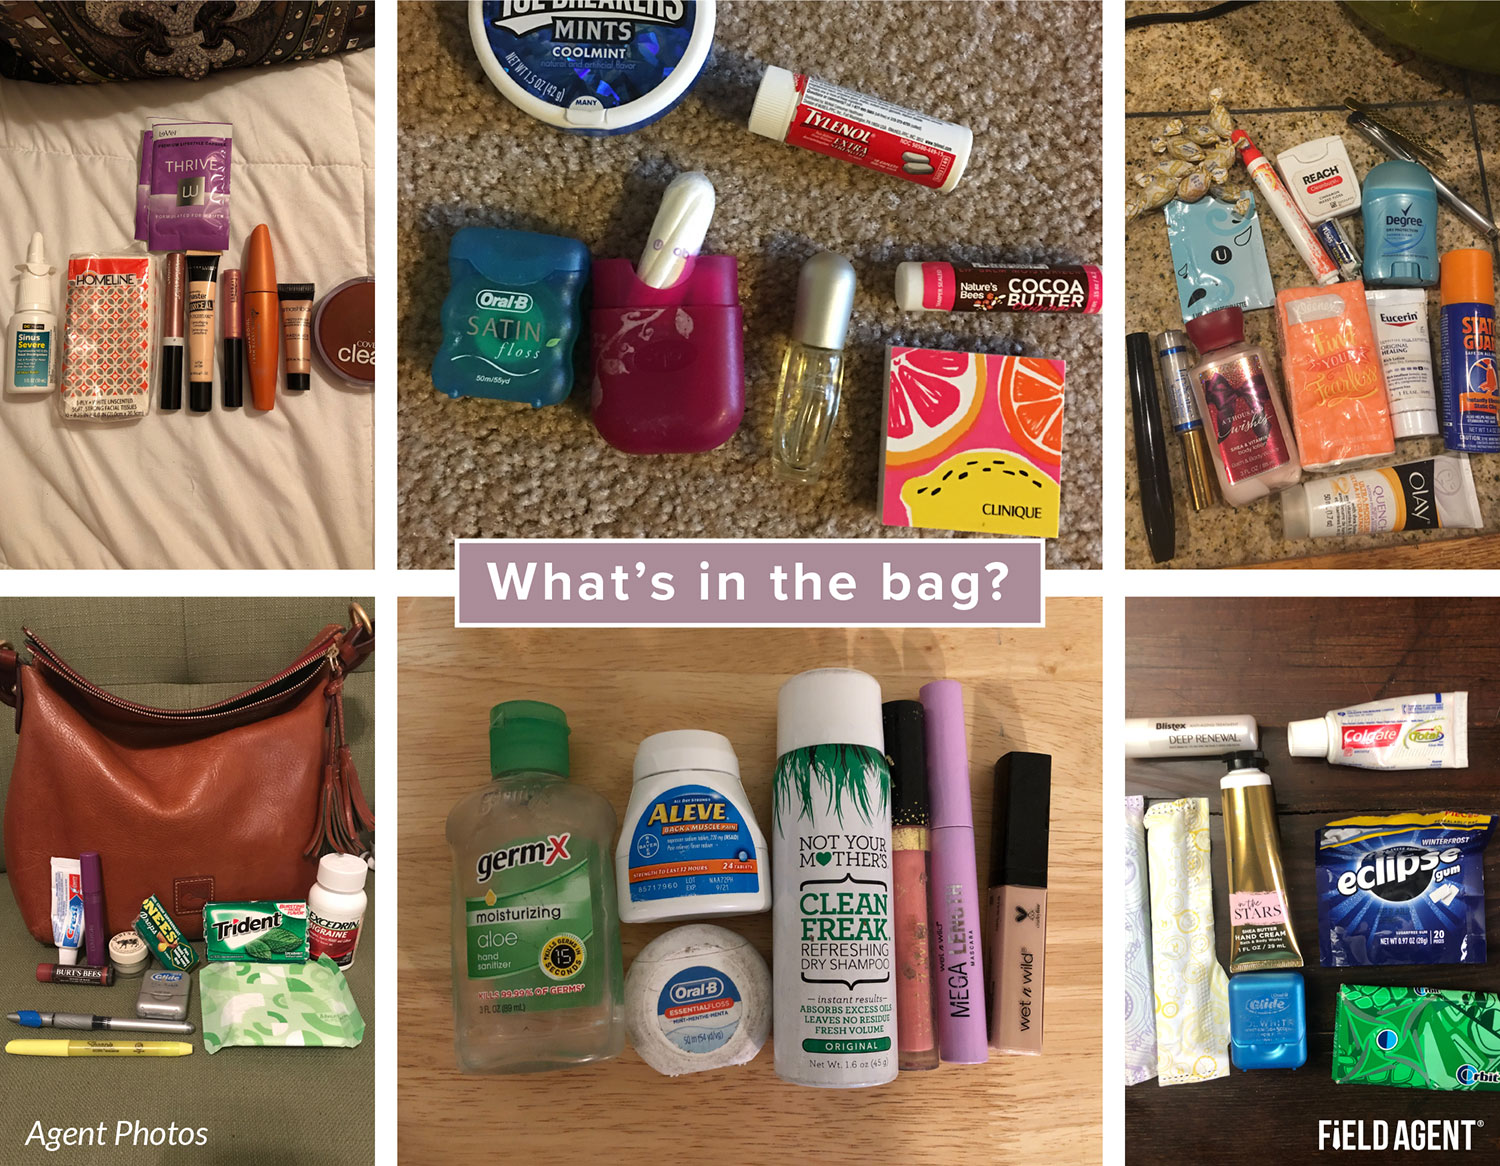 2Whats-in-the-bag--CPG-Brands-Inside-Womens-Purses